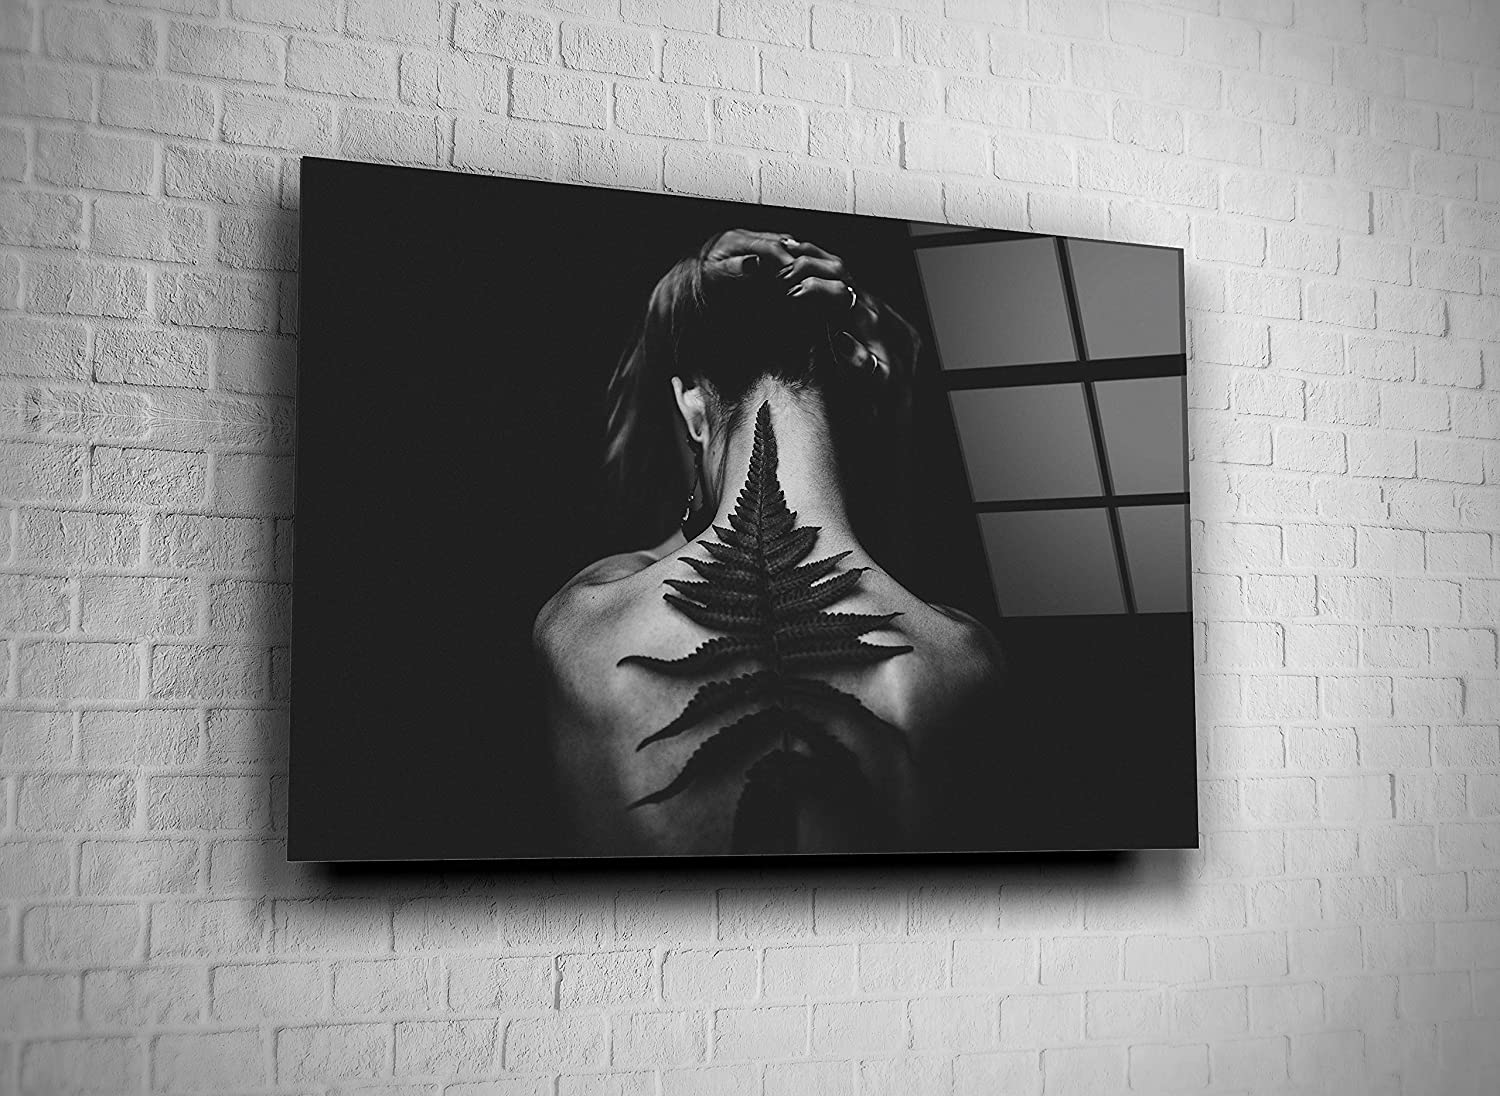 Amazon Com Girl With Leaf Tempered Glass Wall Art Black And White Photo Present Home Decor Office Hotel Modern Gift 16x24 Posters Prints